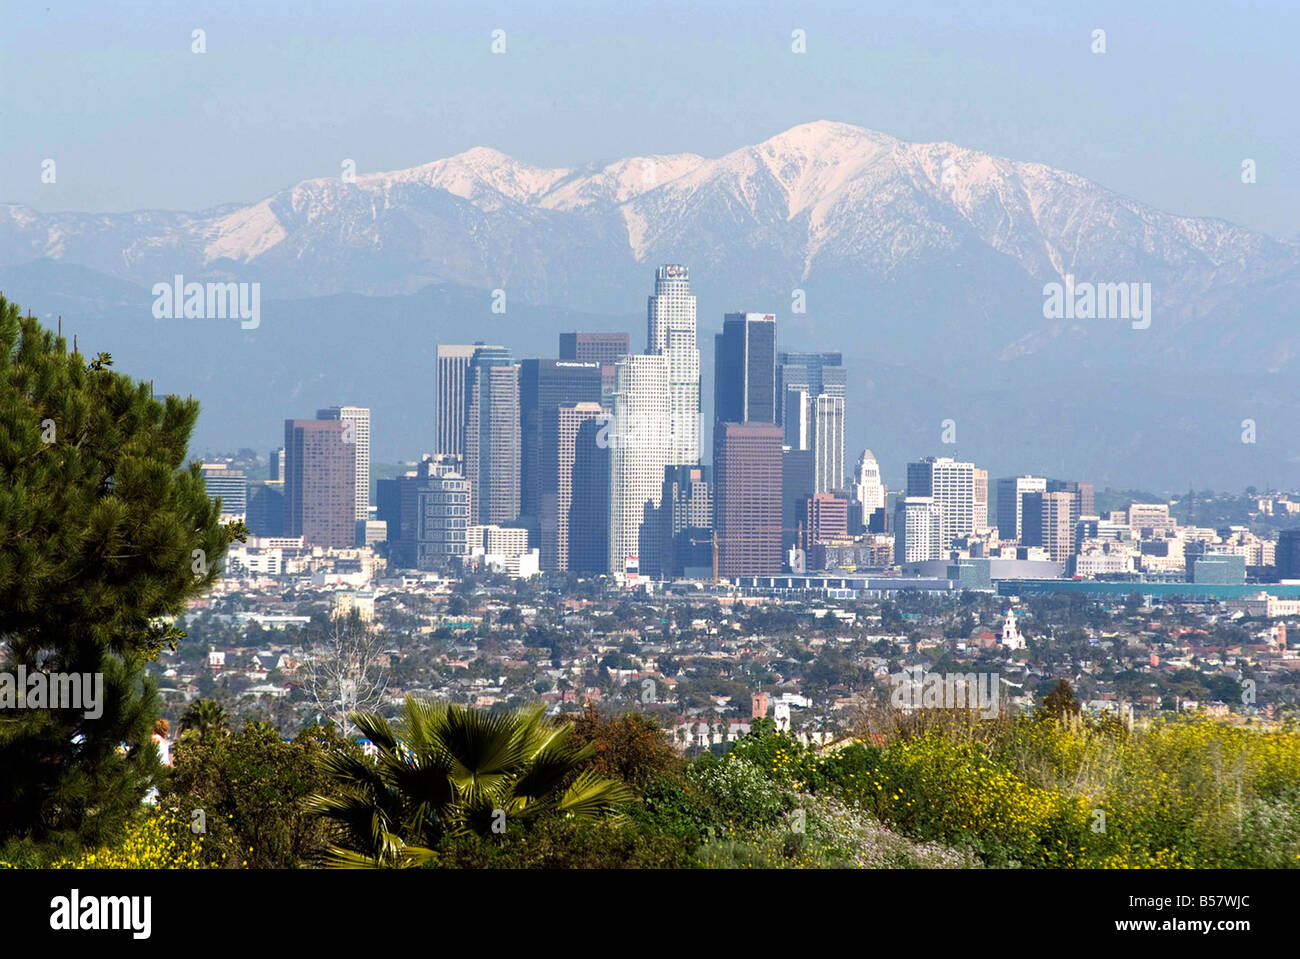 View of downtown Los Angeles looking towards San Bernardino Mountains, California, United States of America, North - Stock Image